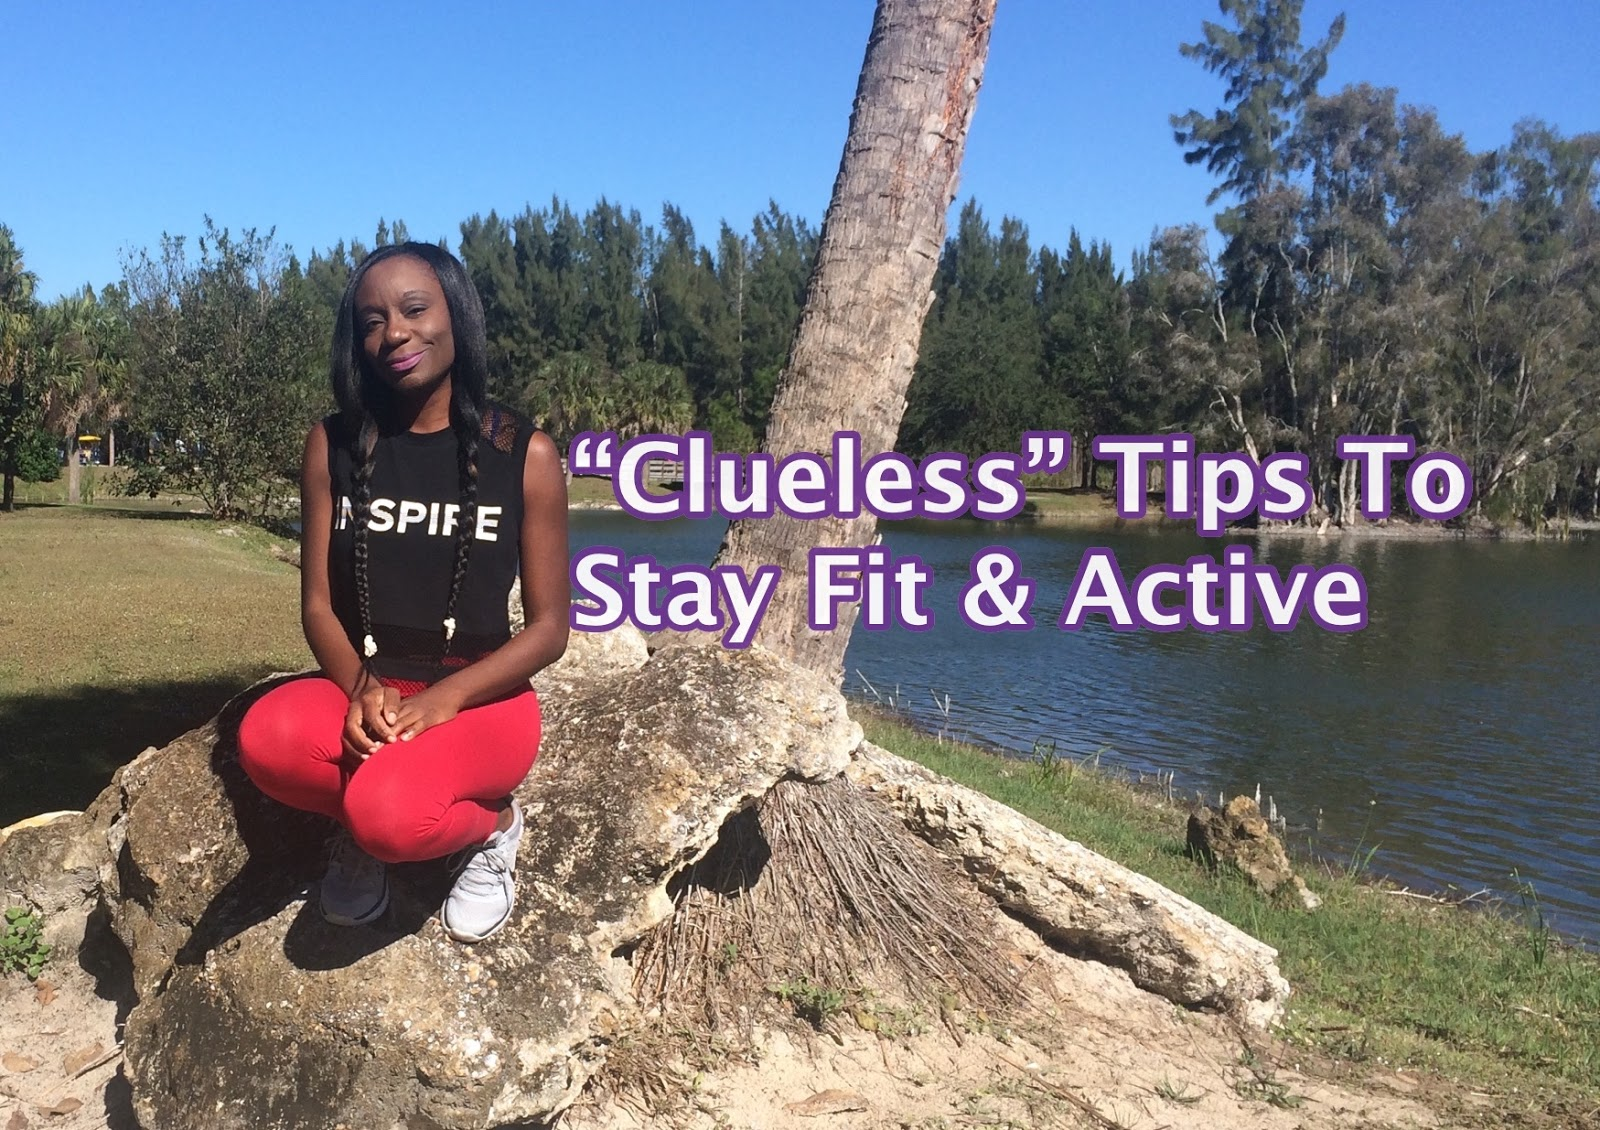 reasons to stay fit Top 10 reasons to remain healthy & fit 6 years ago by surbhi 0 to be healthy one requires eating healthy food, exercising daily, being happy, staying hydrated, enough sleep and do other things that keeps the body in good working conditions.